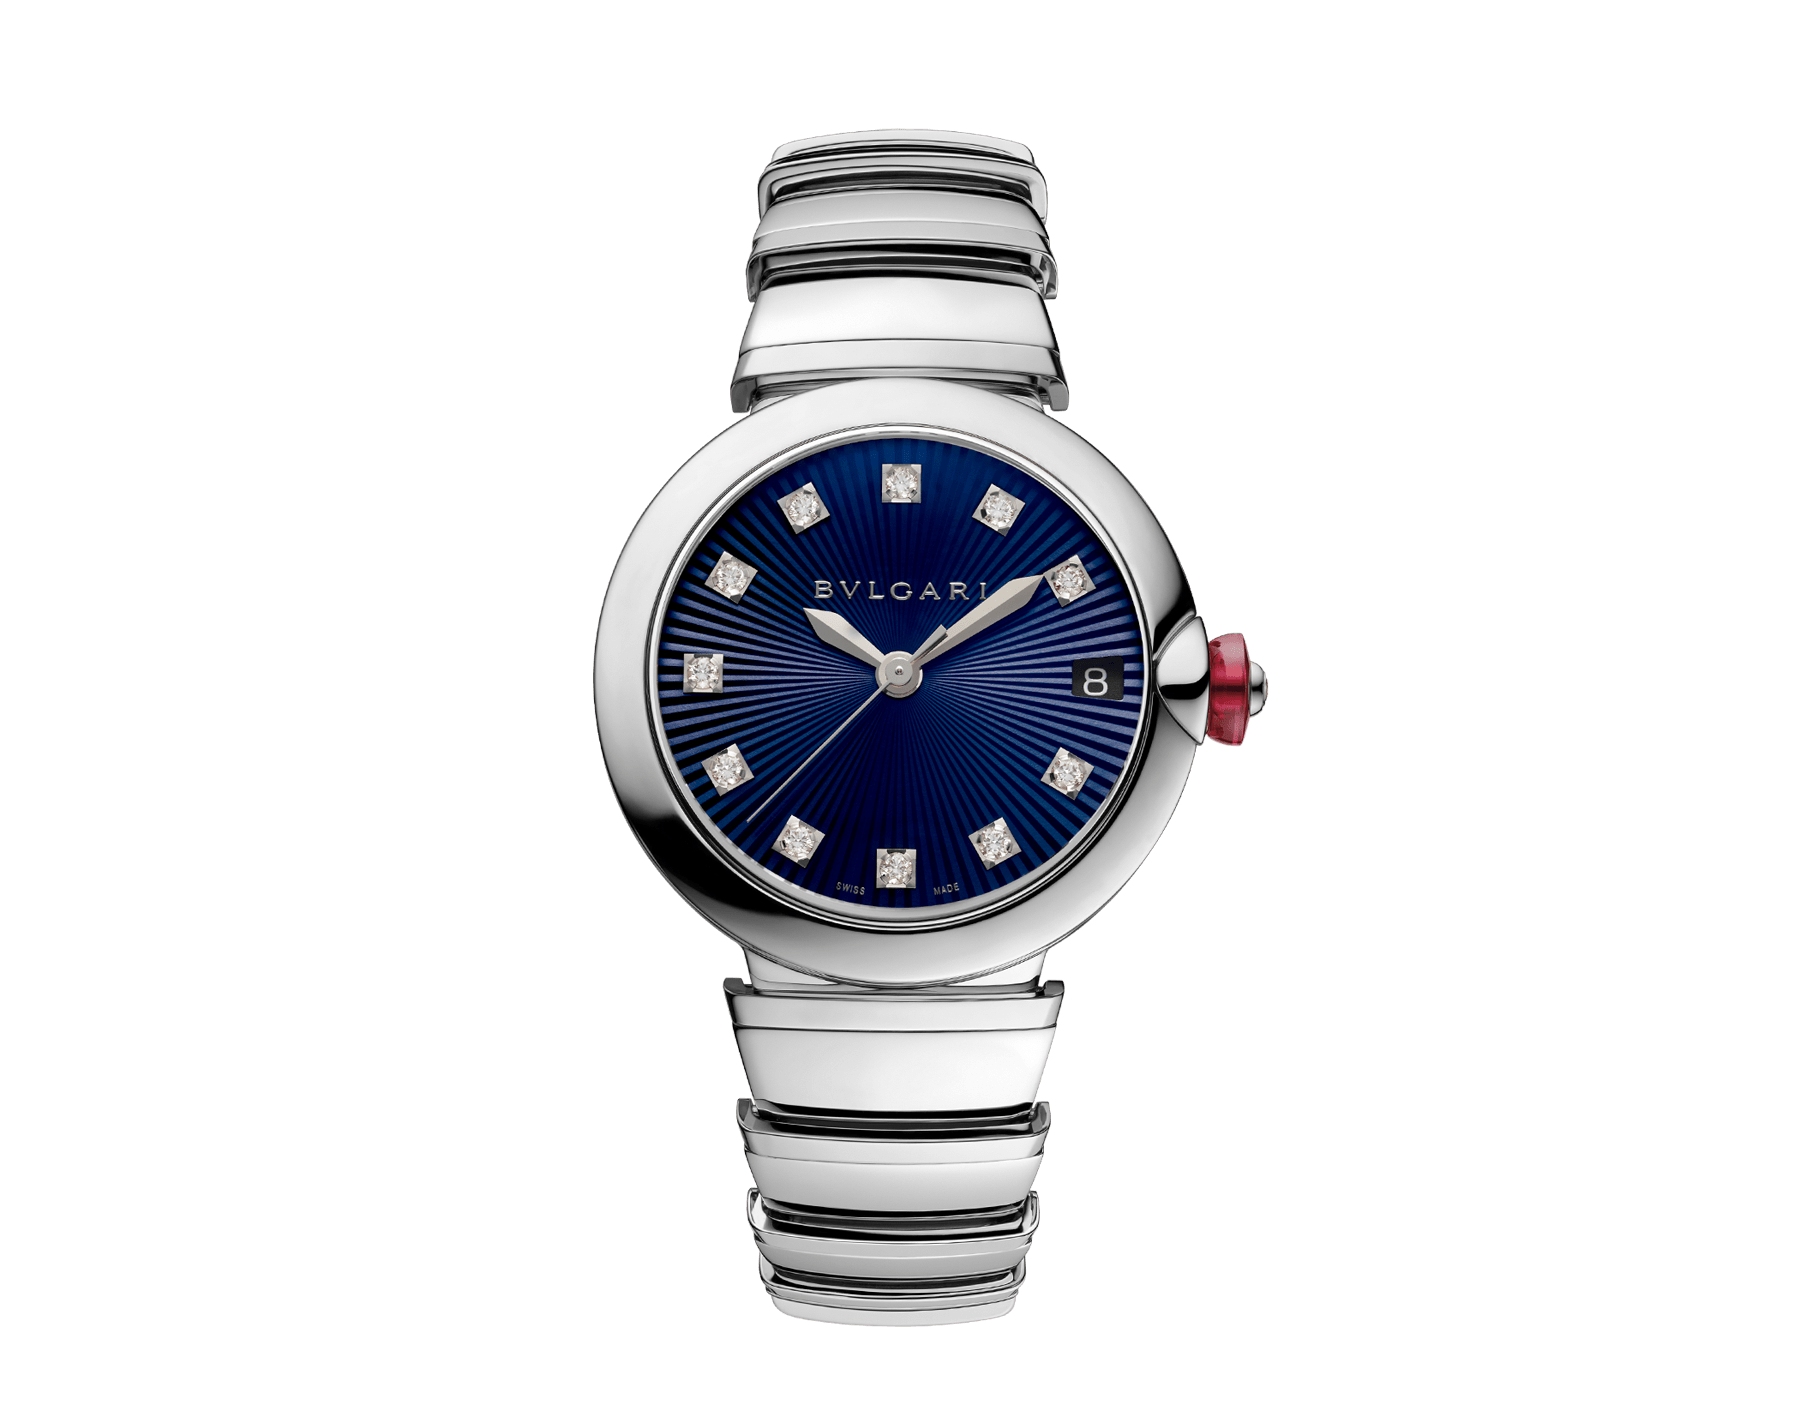 LVCEA watch in stainless steel case and bracelet, with blue dial and diamond indexes. 102564 image 1